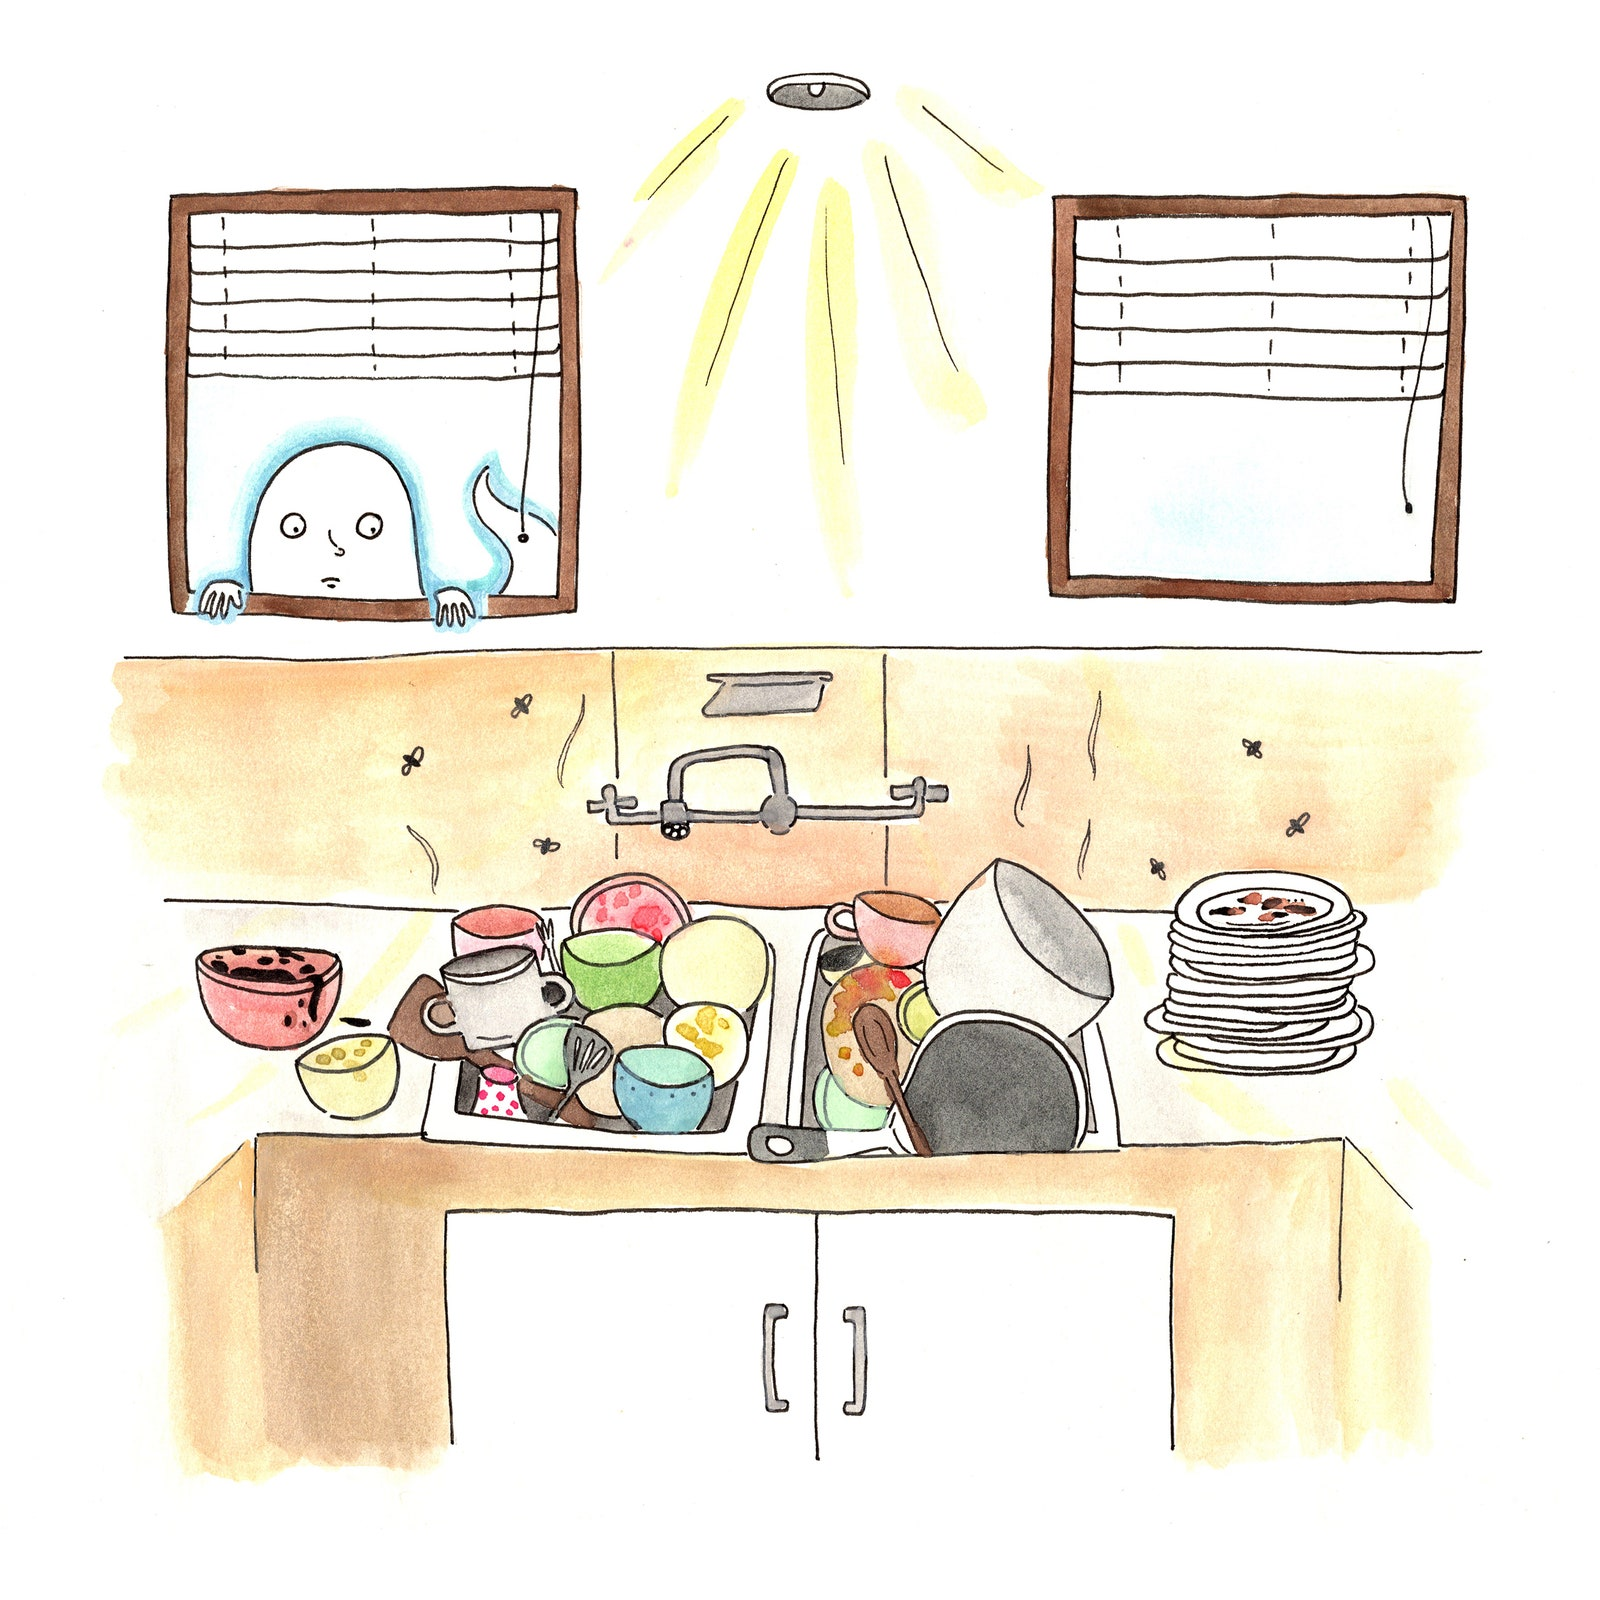 A ghost looking into a window at a pile of dishes.